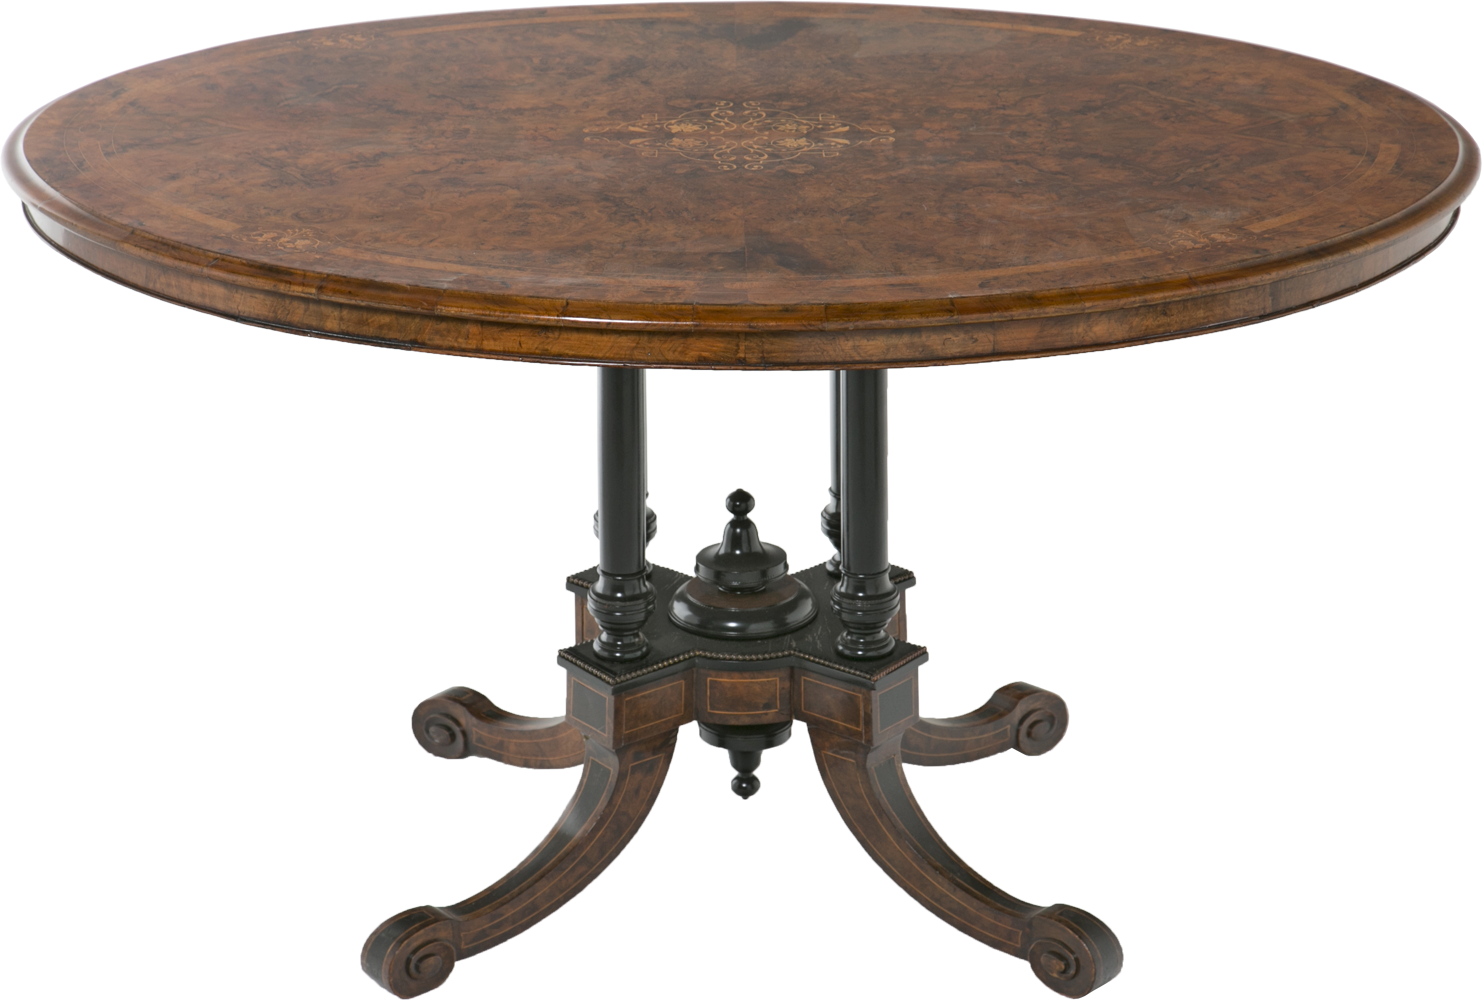 Table Png Image Table Dining Table Western Decor